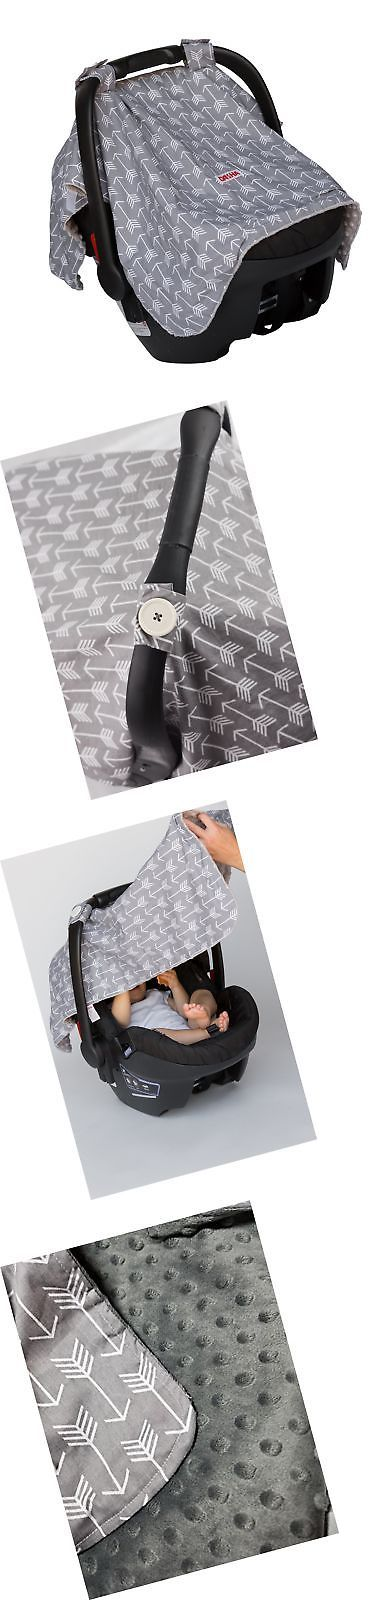 Car Seat Accessories 66693: Baby Car Seat Cover For Girls And Boys By Danha Unisex Carseat Canopy Gray ... -> BUY IT NOW ONLY: $300 on eBay!